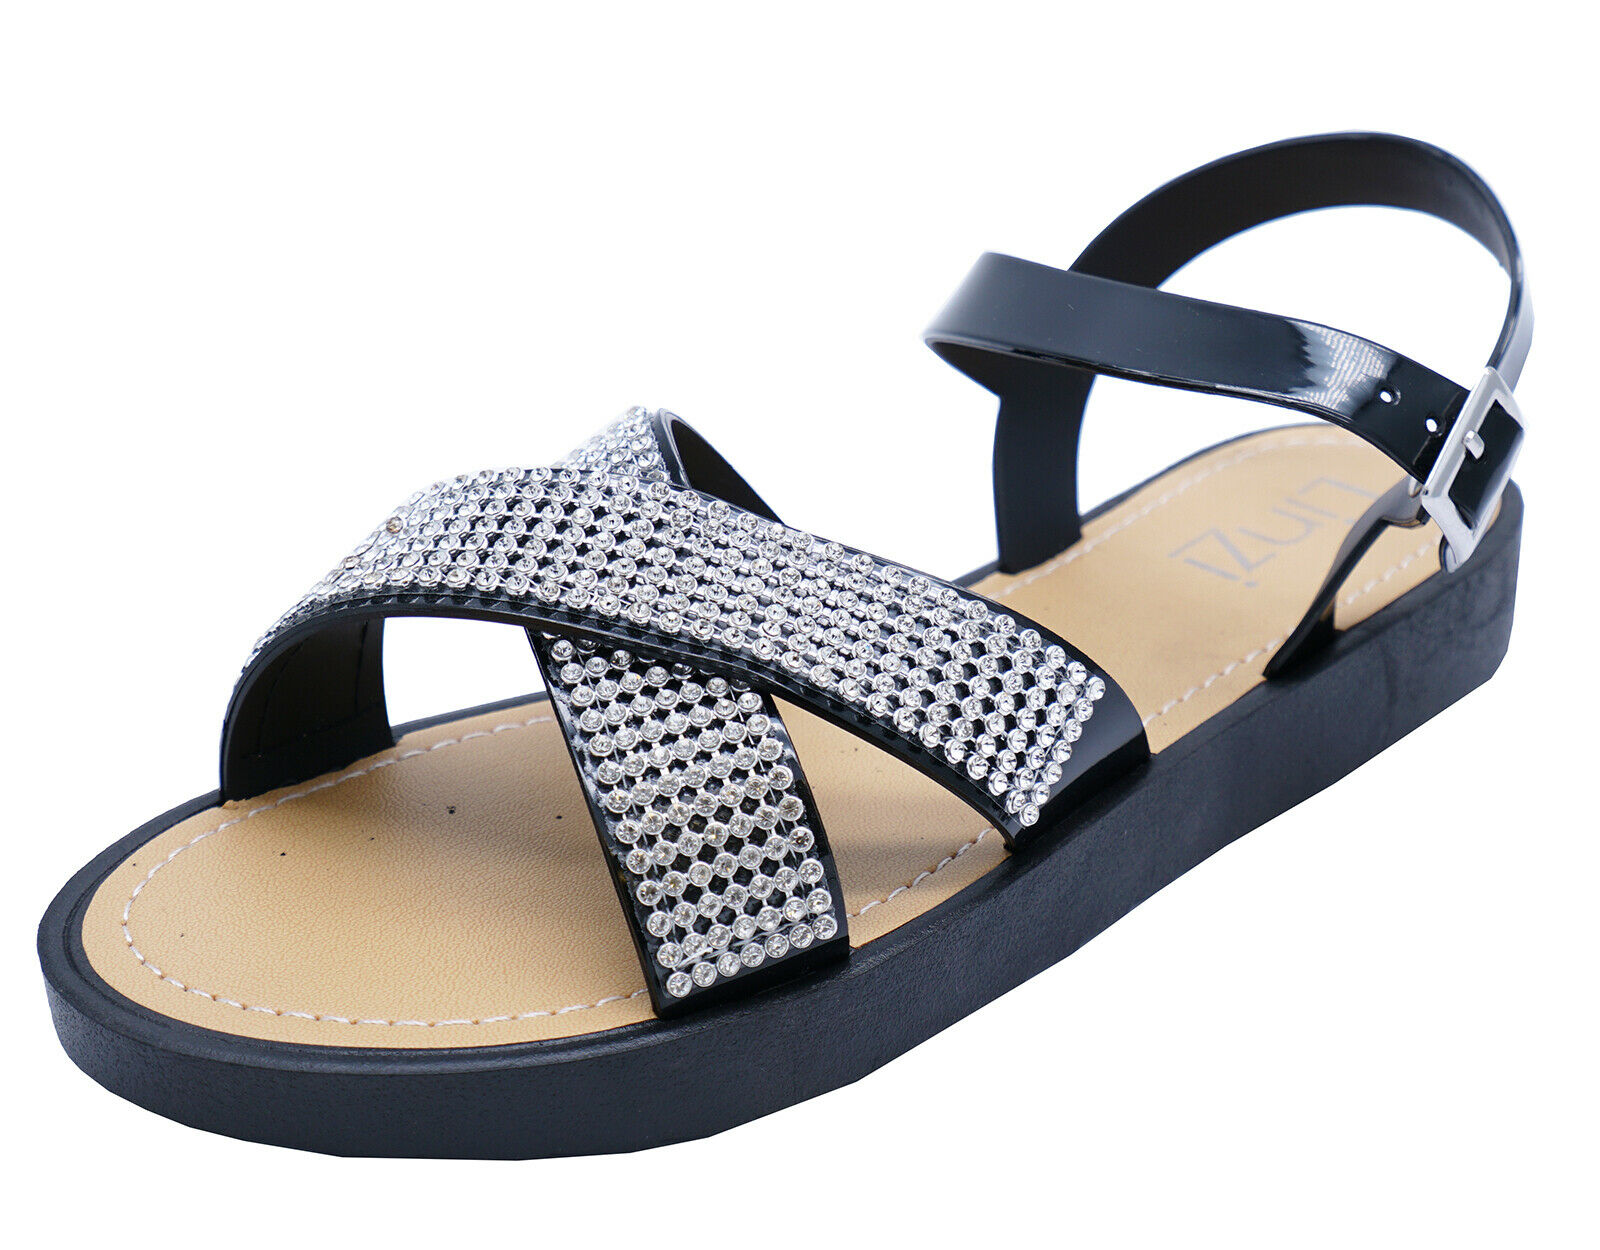 WOMENS BLACK DUNLOP SLIP-ON POOL BEACH HOLIDAY SLIDER MULES SANDALS SHOES 3-8